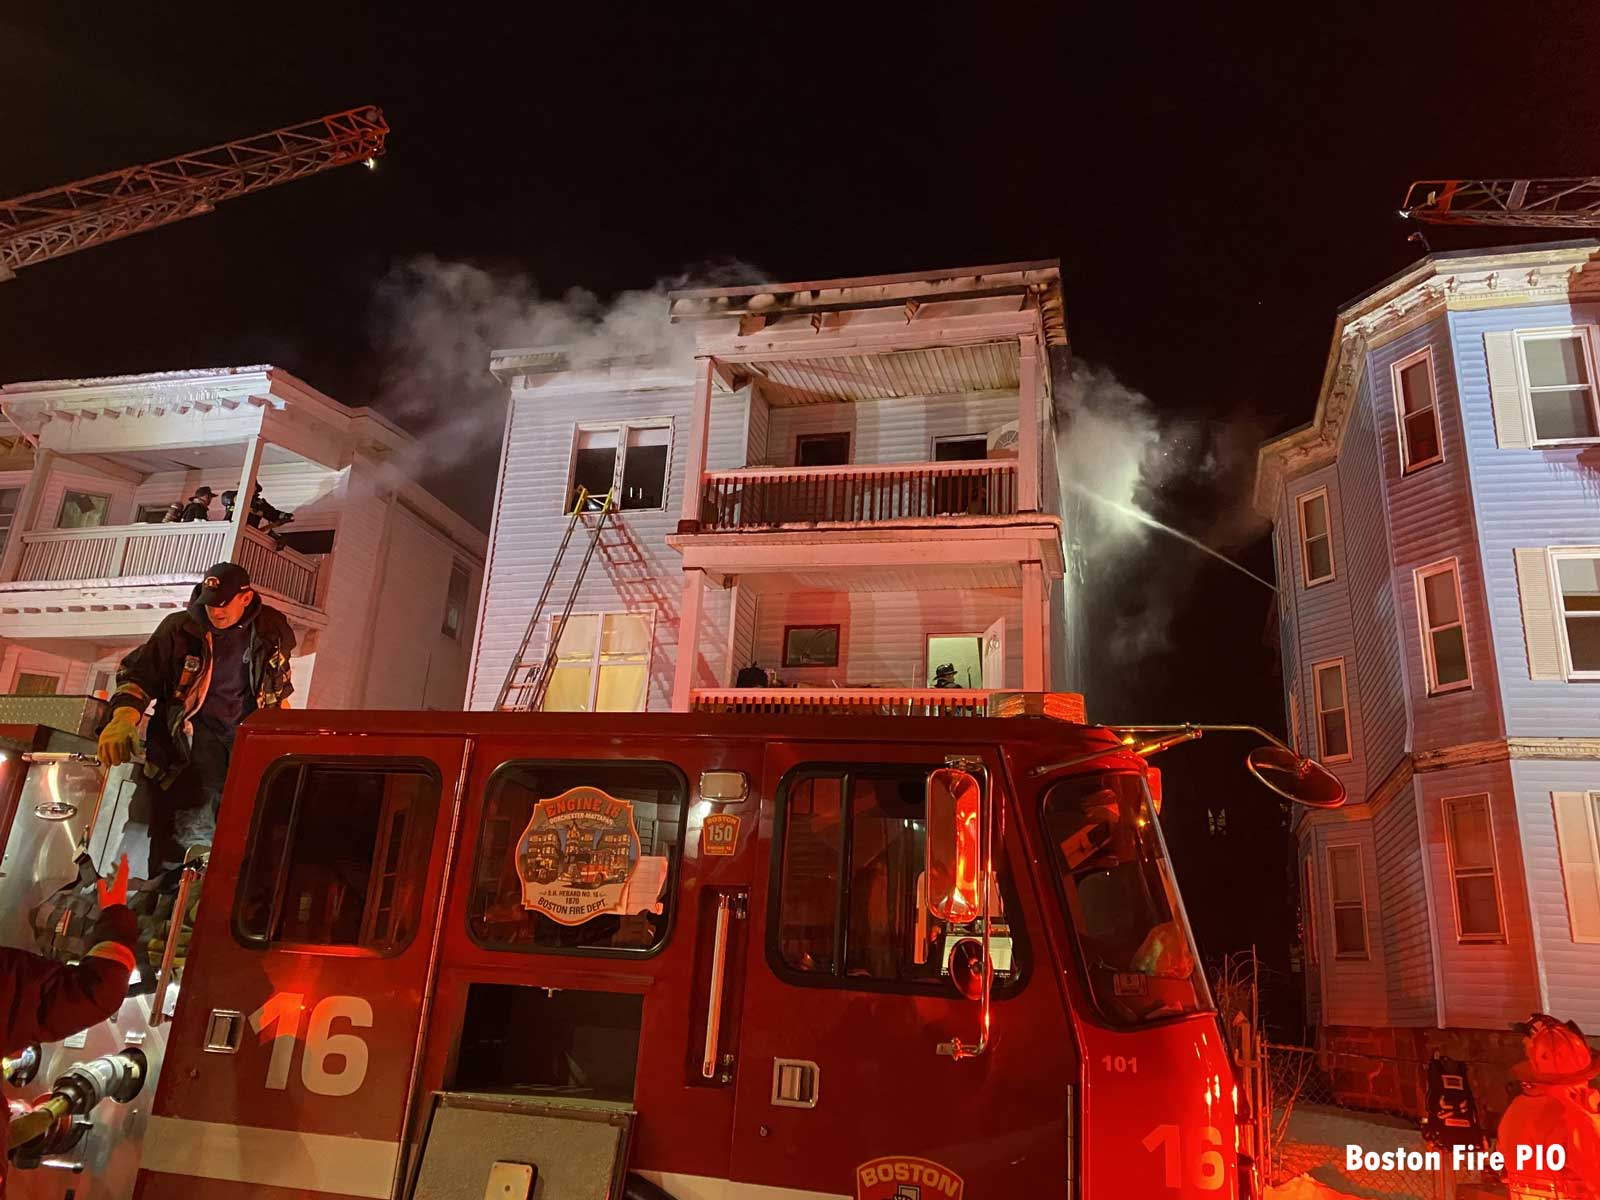 Firefighter on a fire truck with fire building behind and two aerials in use in Boston